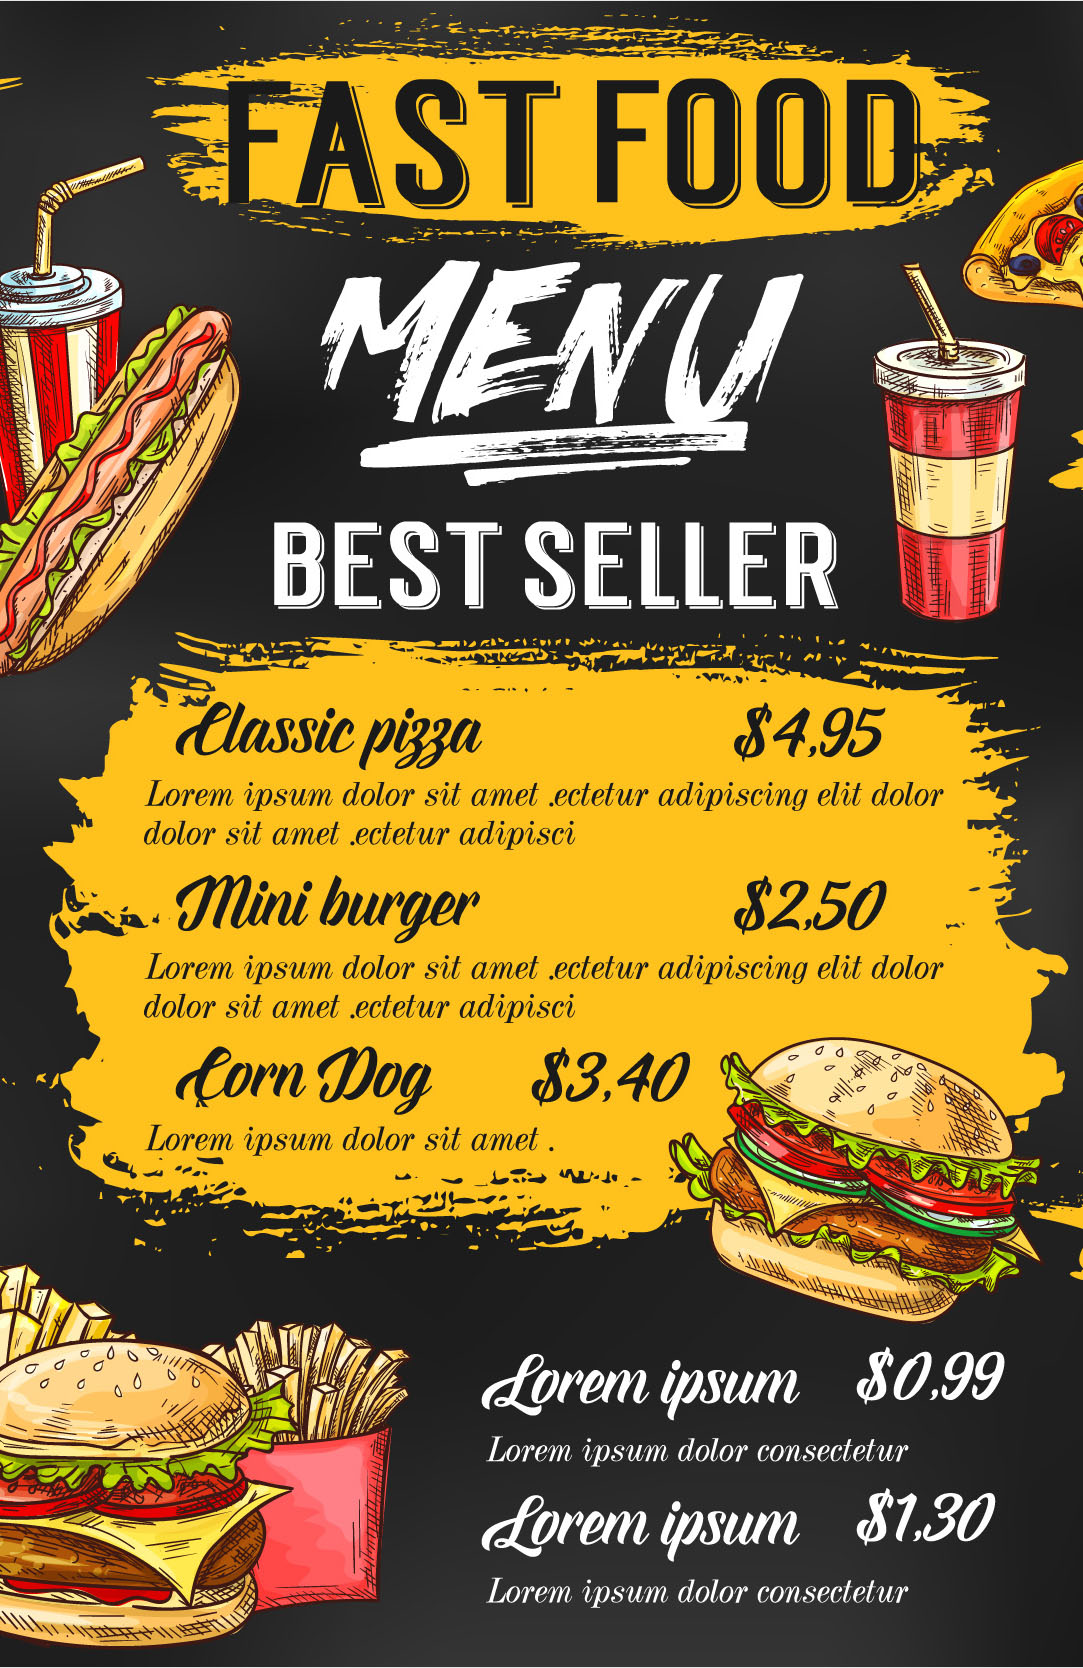 Menus - Full Color 8.5 x 11